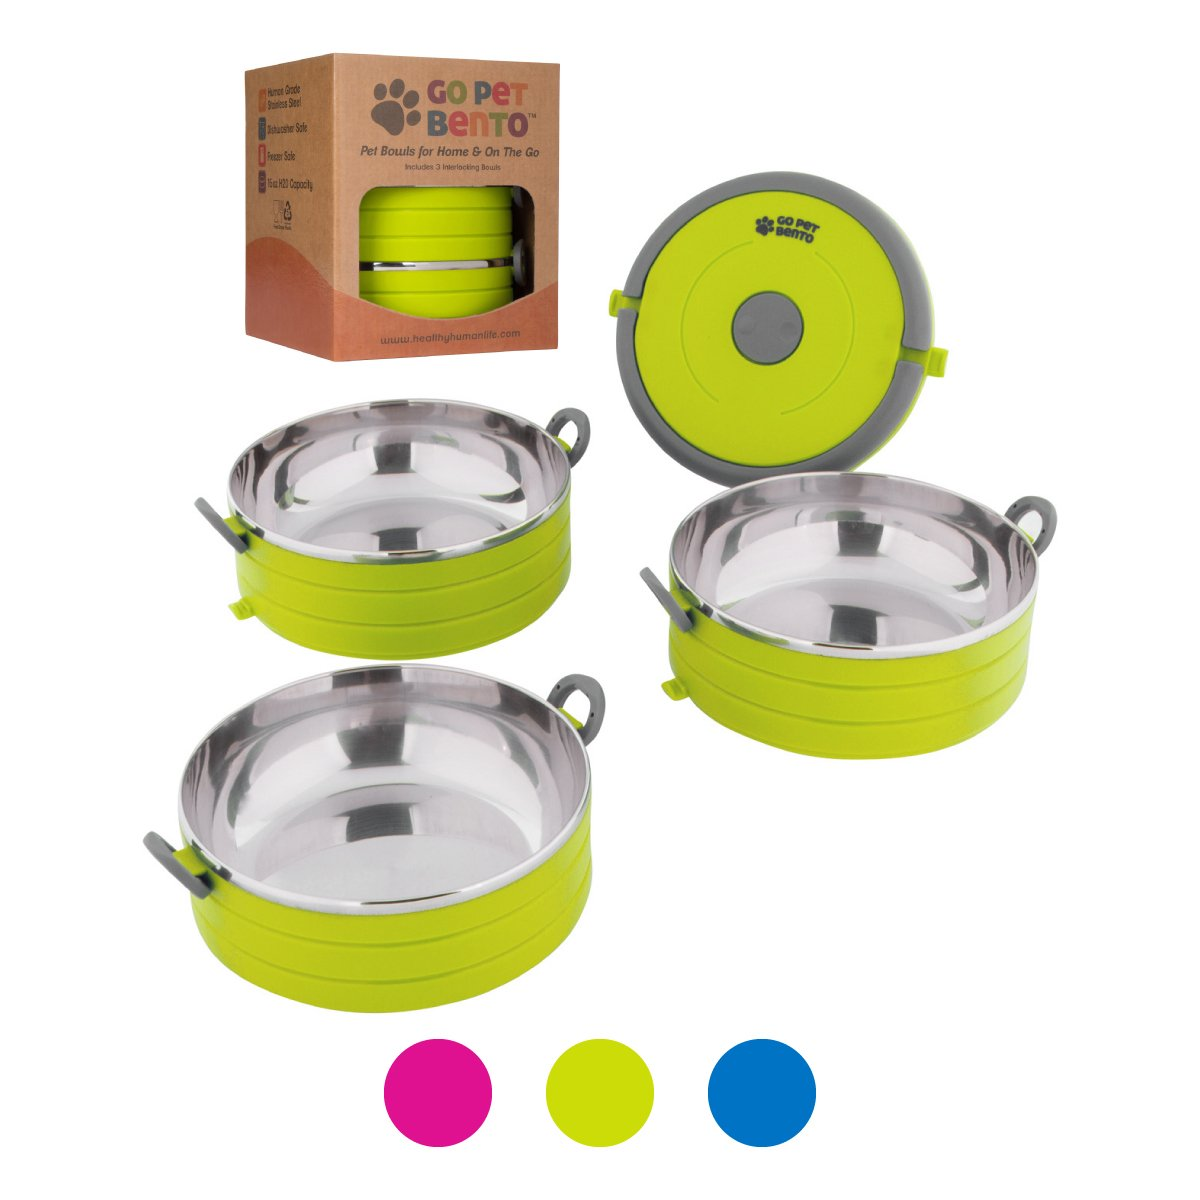 Healthy Human Portable Dog & Pet Travel Bowls with Lid - Human Grade Stainless Steel - Ideal for Food & Water - Green - 3 Bowl Set